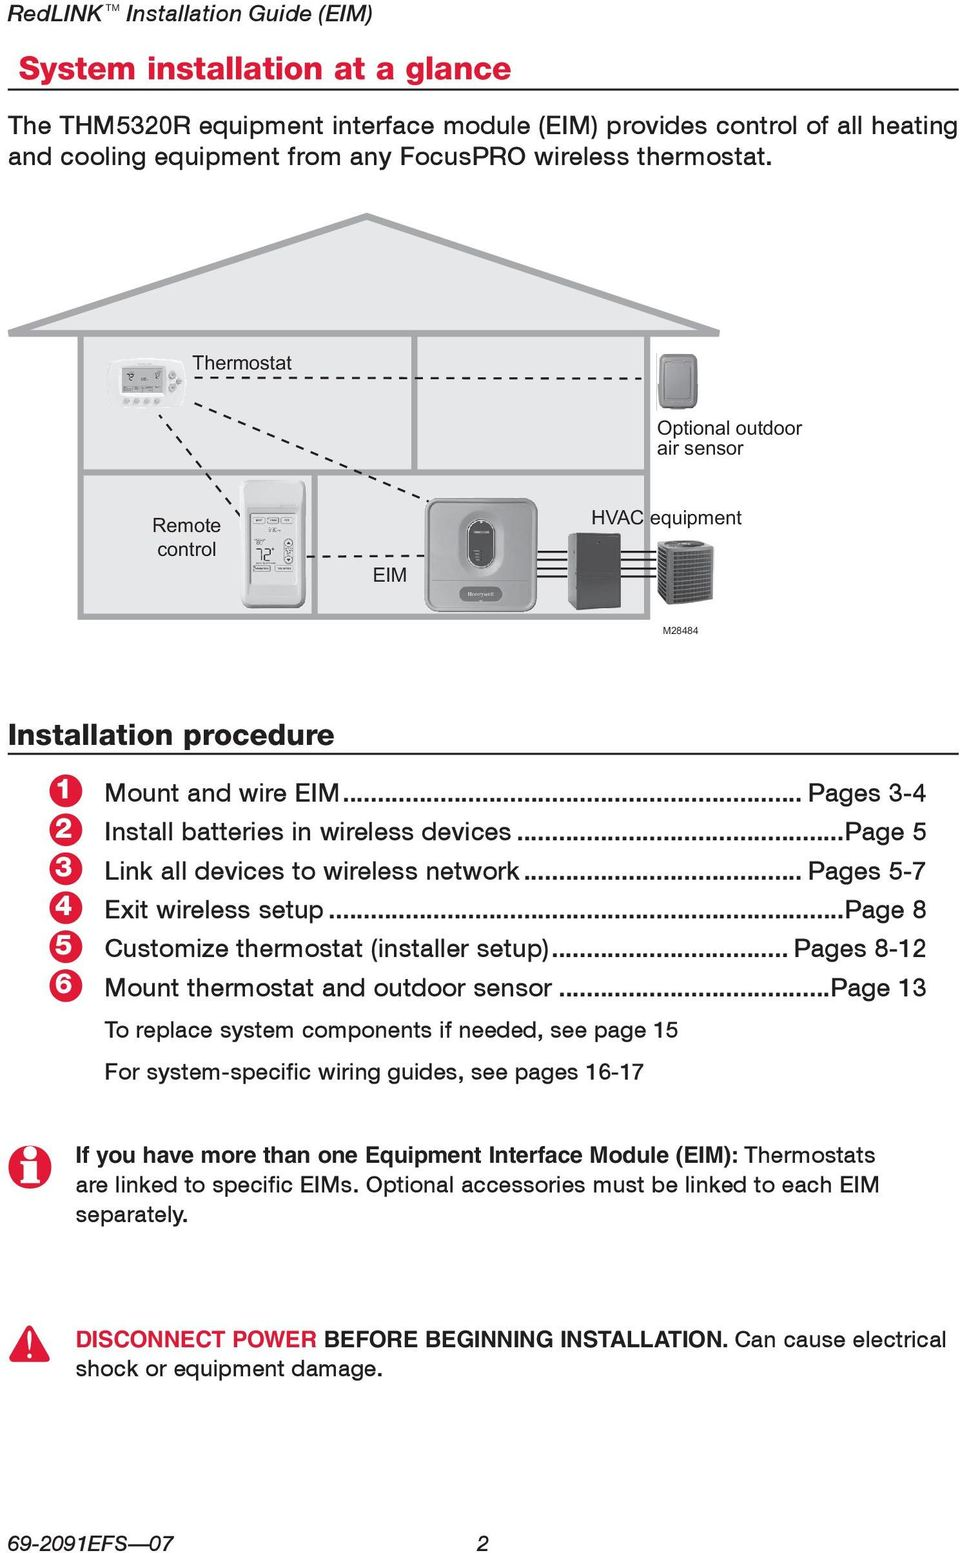 ..page 5 Link all devices to wireless network... Pages 5-7 Exit wireless setup...page 8 Customize thermostat (installer setup)... Pages 8-12 Mount thermostat and outdoor sensor.